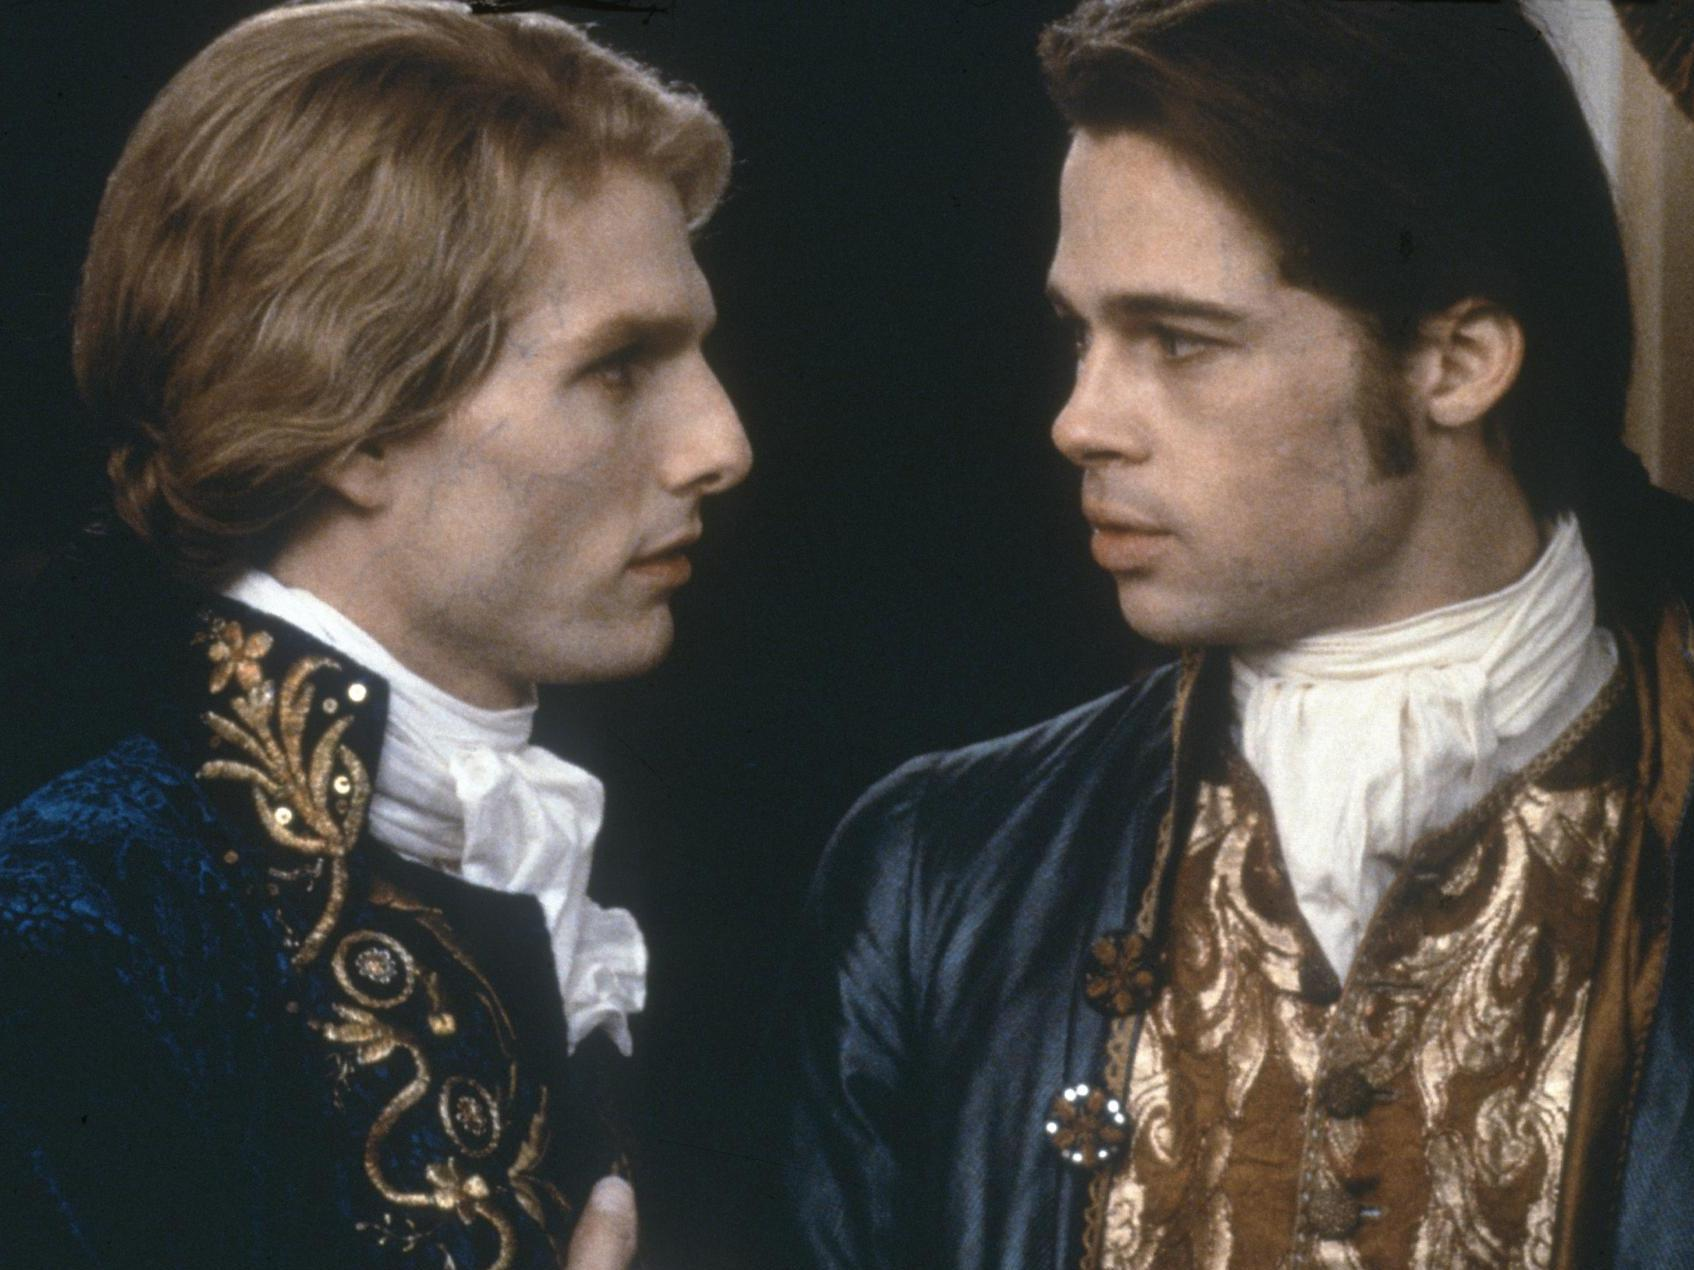 The bite stuff: Tom Cruise, Brad Pitt and the making of 'Interview with the Vampire'